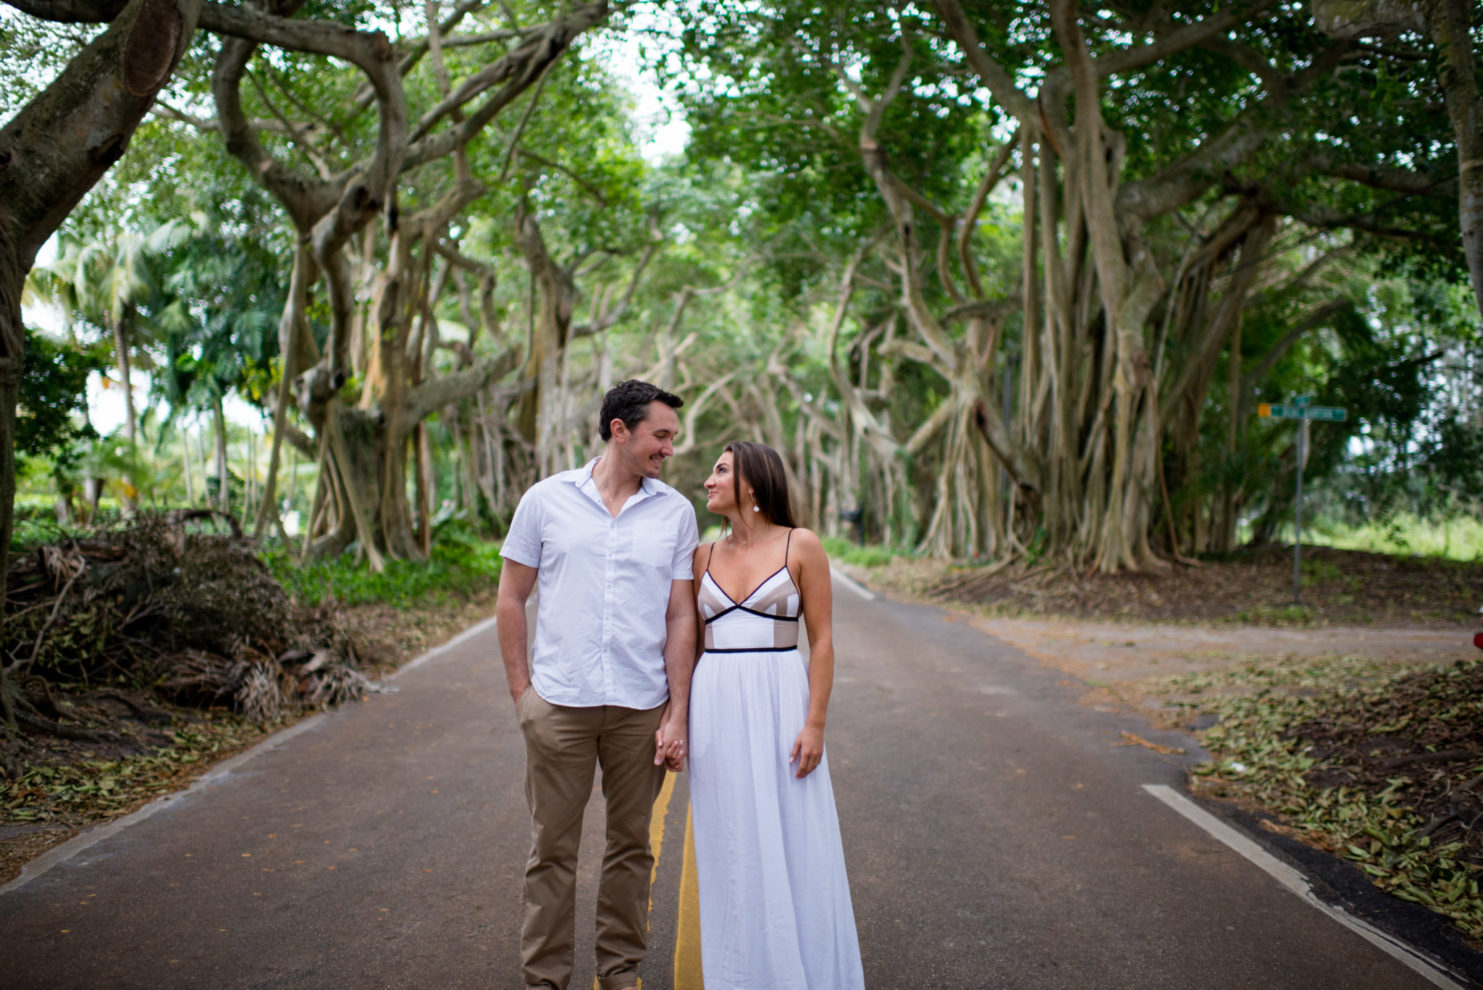 Cleveland Wedding Photography Engagement Photos in the Banyan Trees Photo